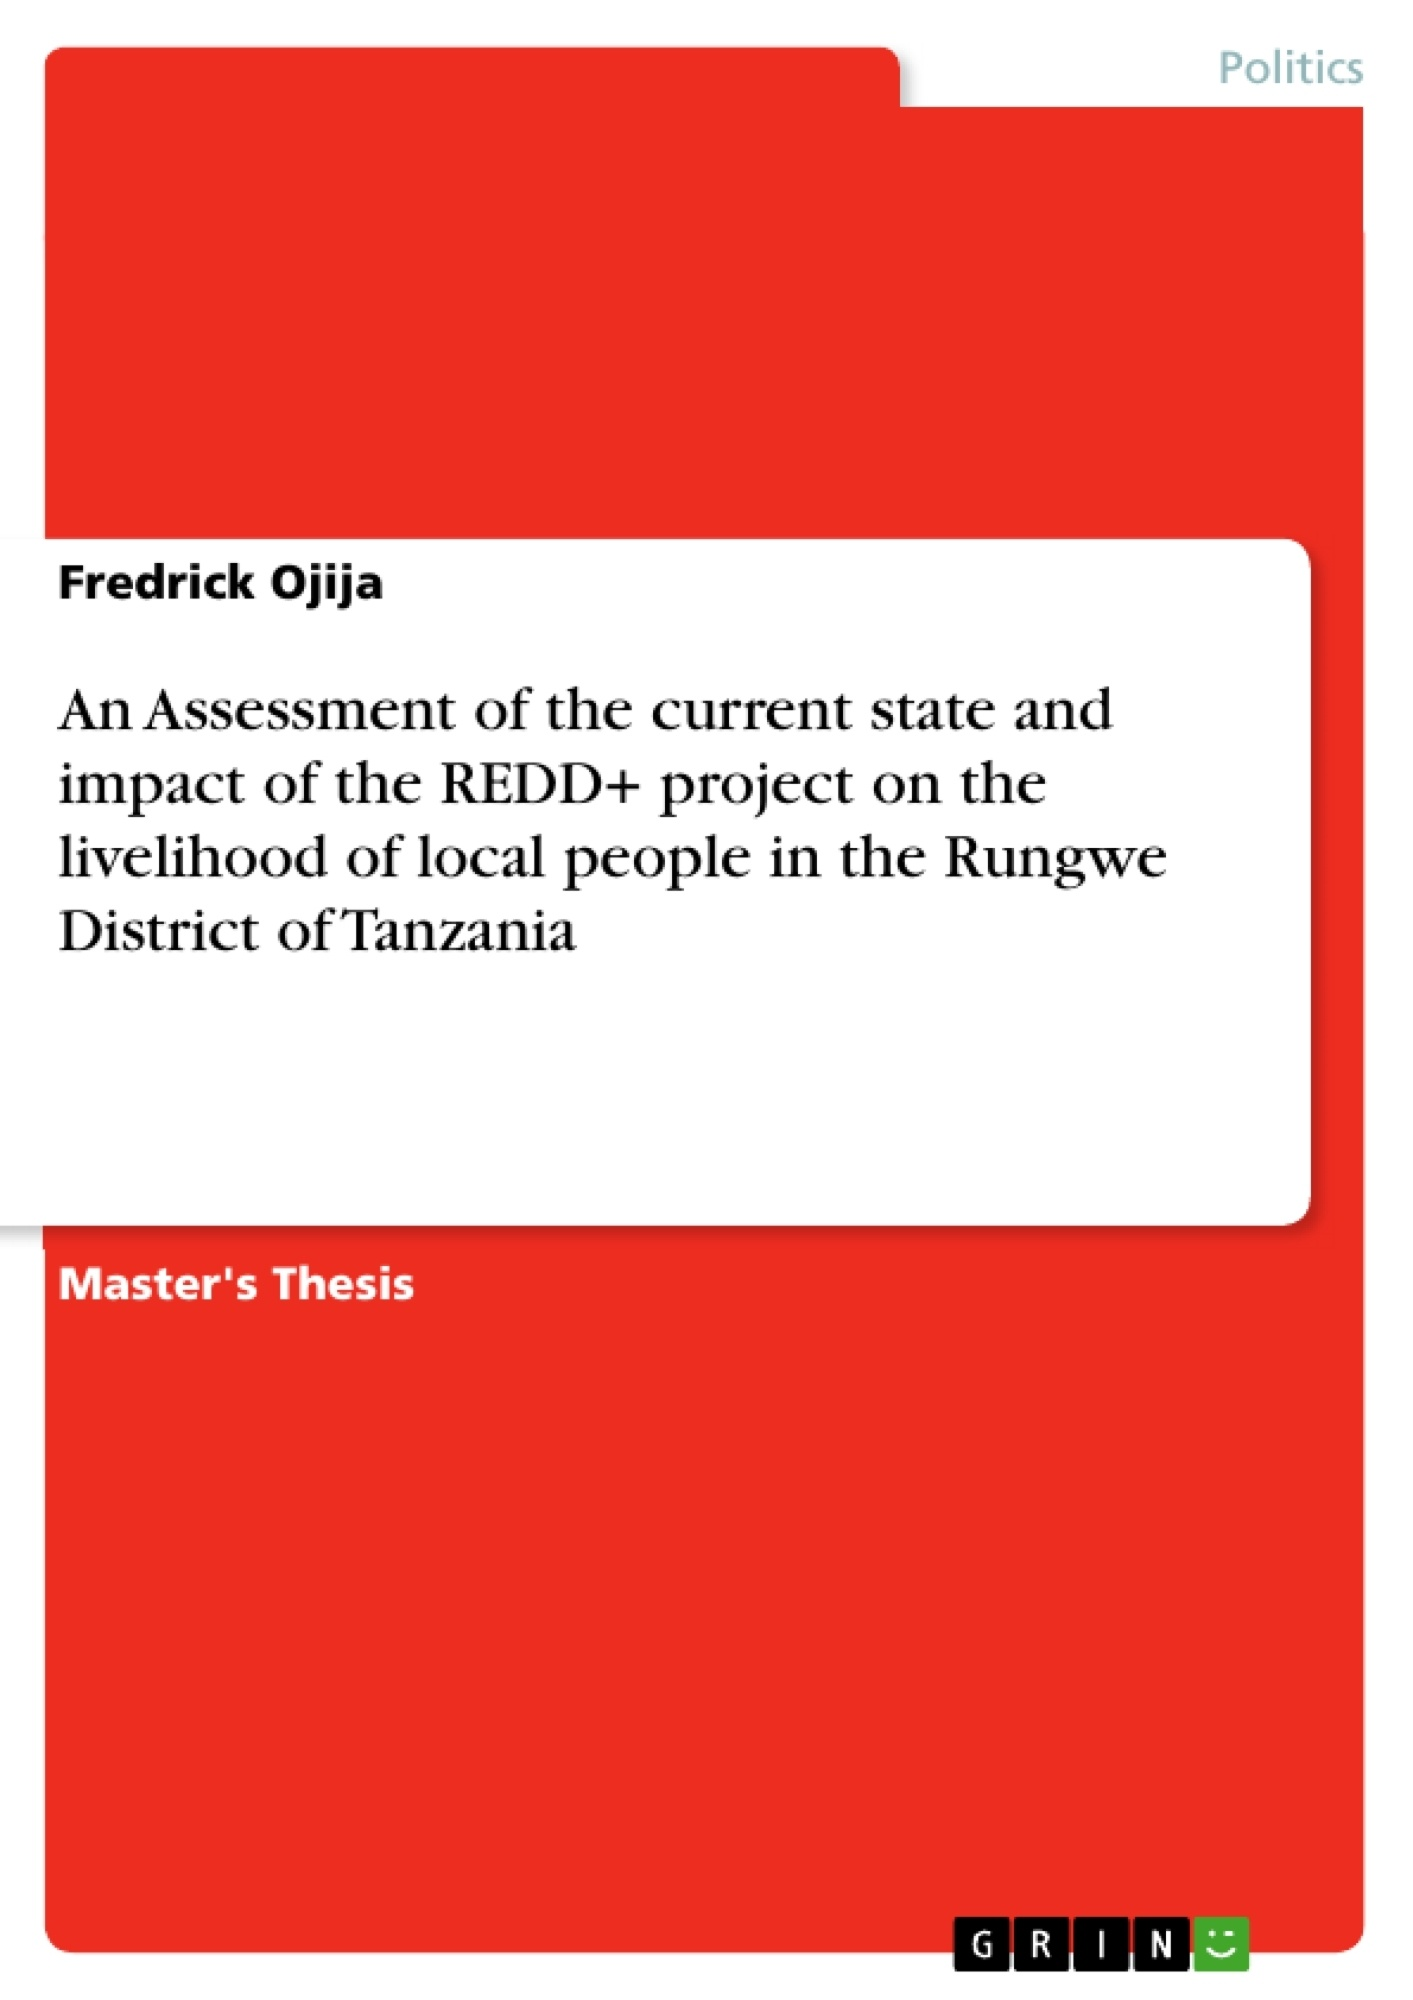 Title: An Assessment of the current state and impact of the REDD+ project on the livelihood of local people in the Rungwe District of Tanzania